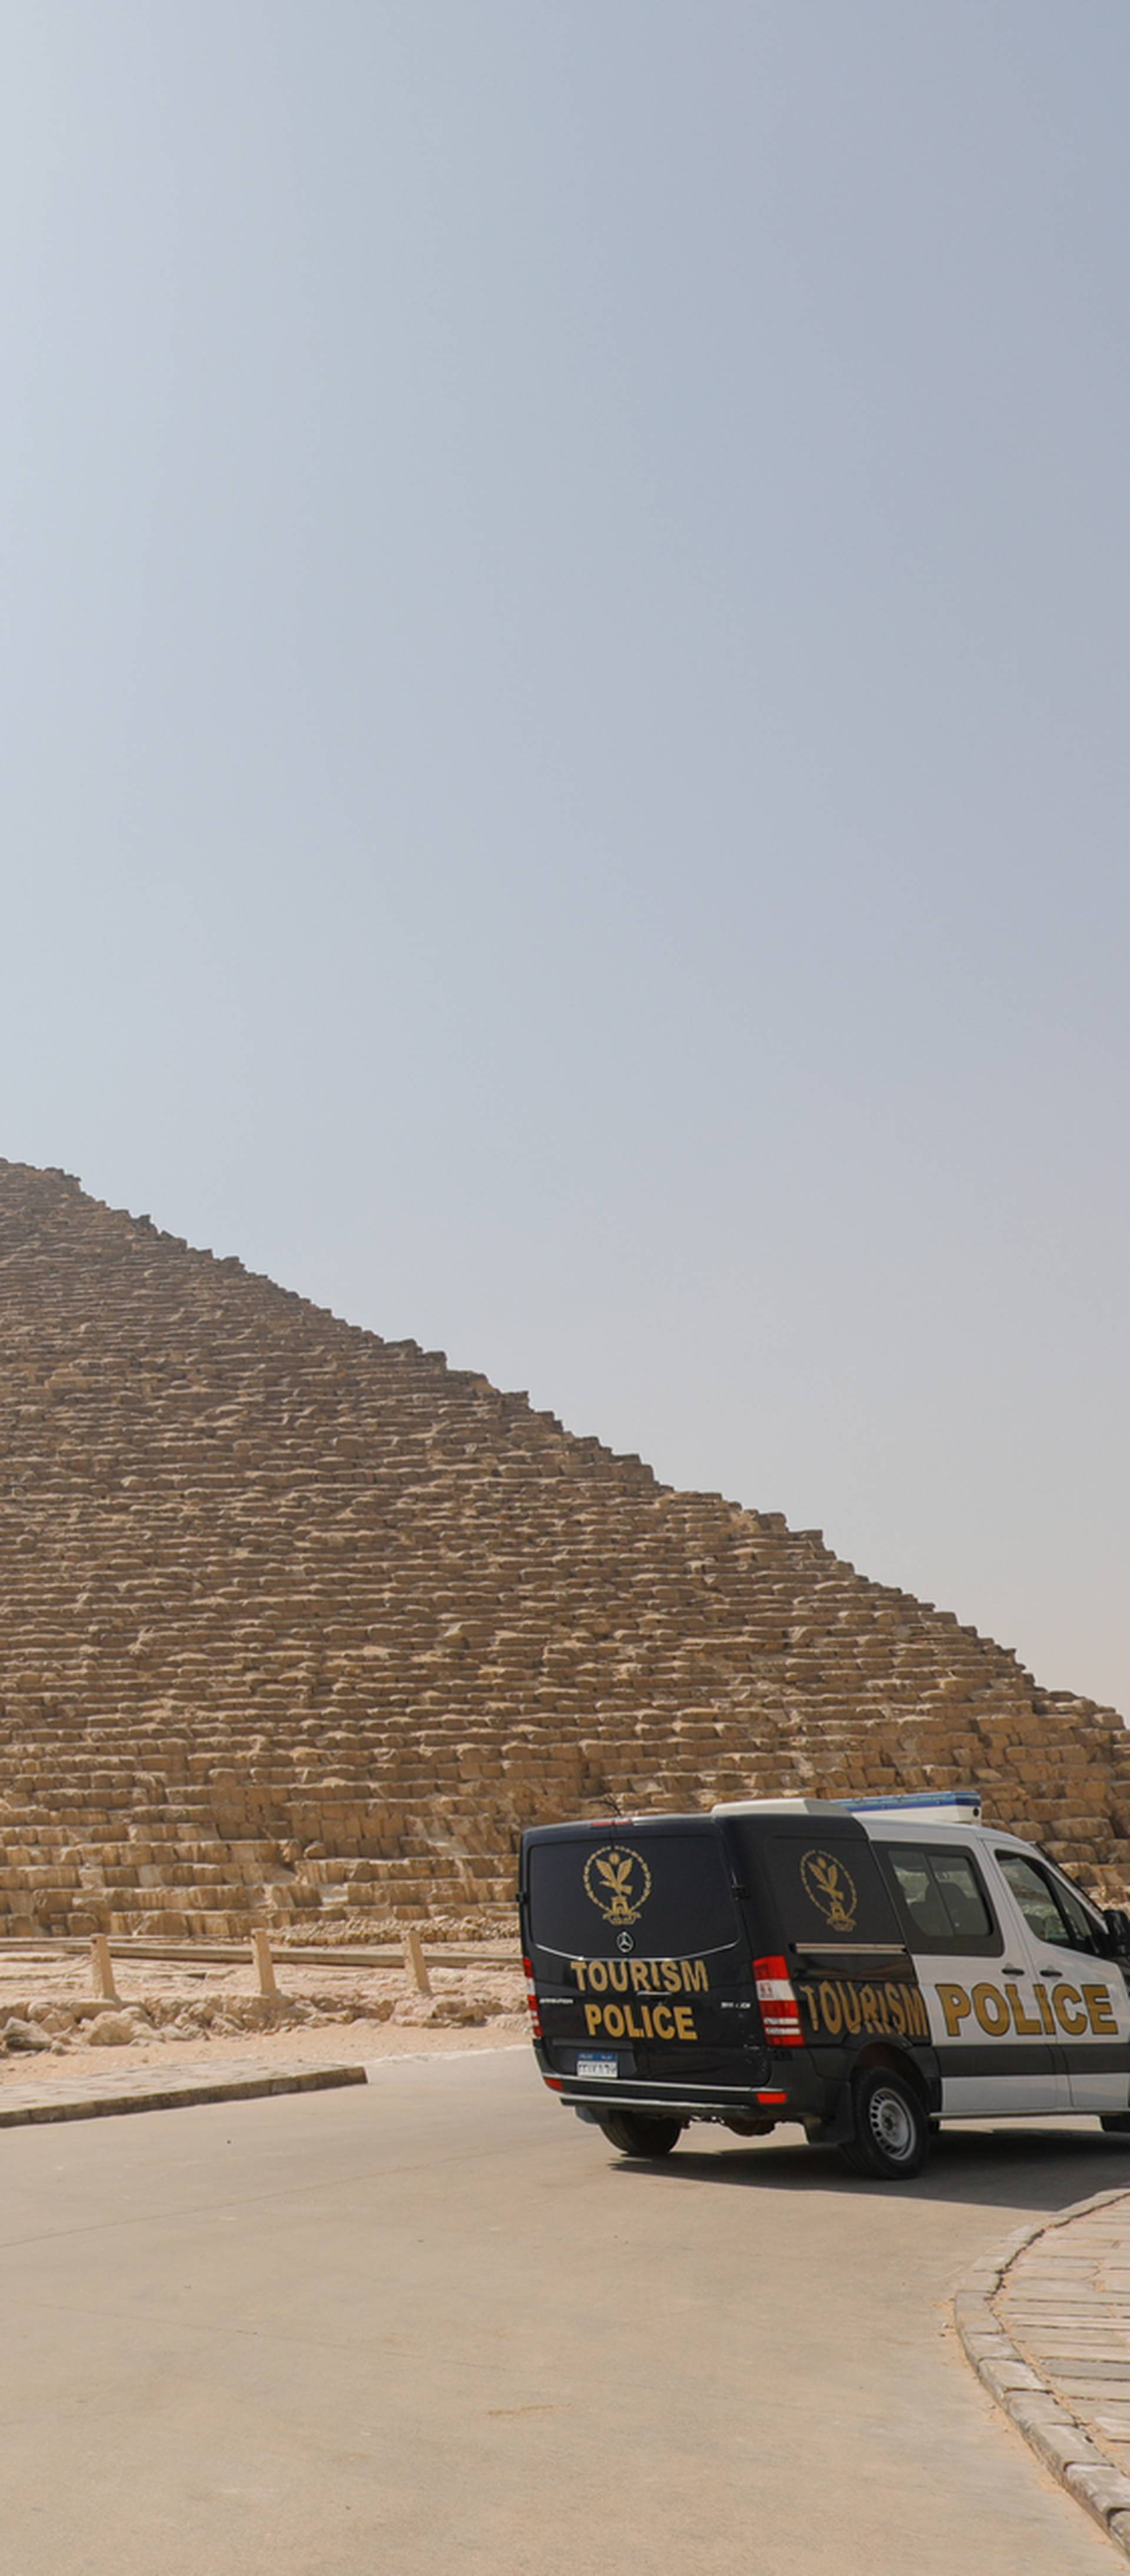 A police car is parked near the Great Pyramids, Giza, on the outskirts of Cairo, as the coronavirus disease (COVID-19) outbreak continues